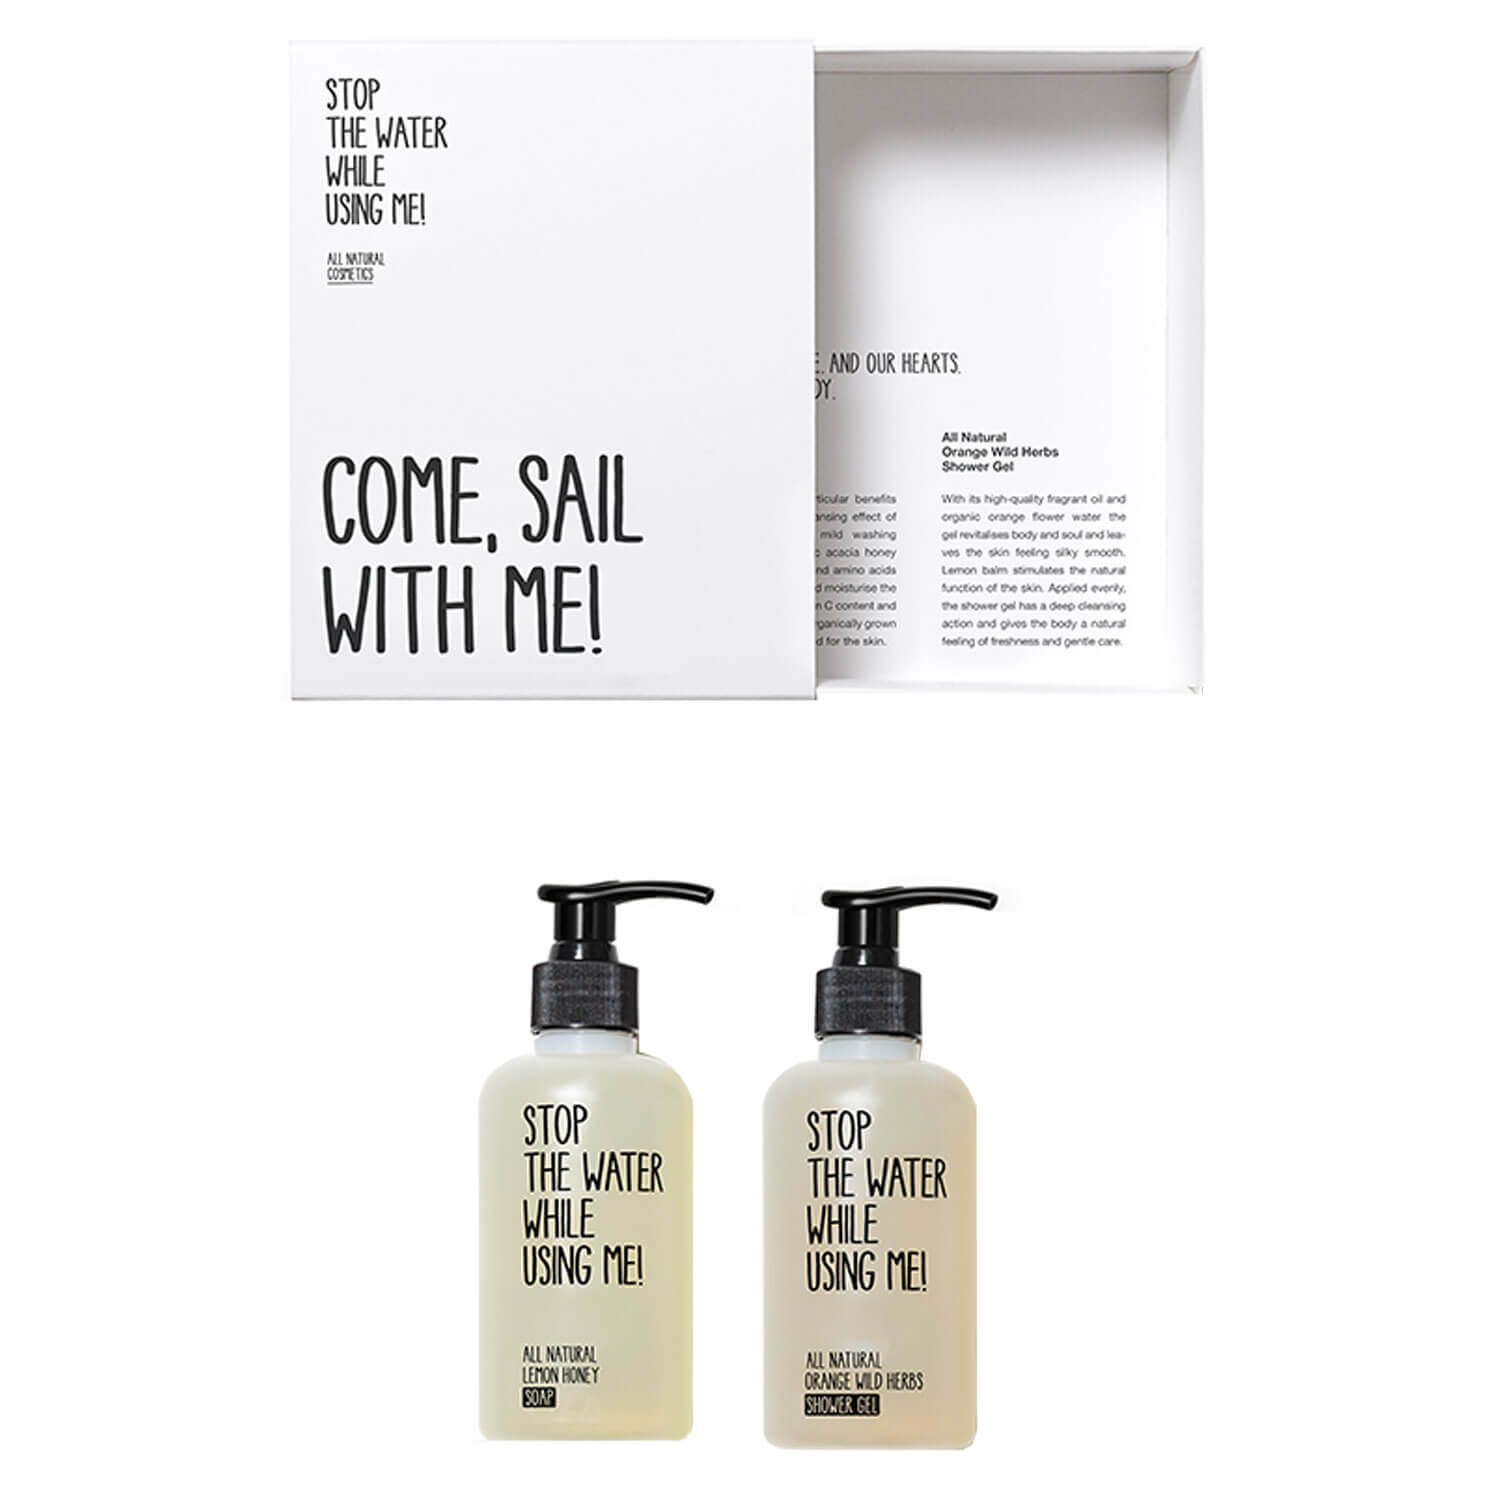 All Natural Body - Come, Sail With Me! Kit